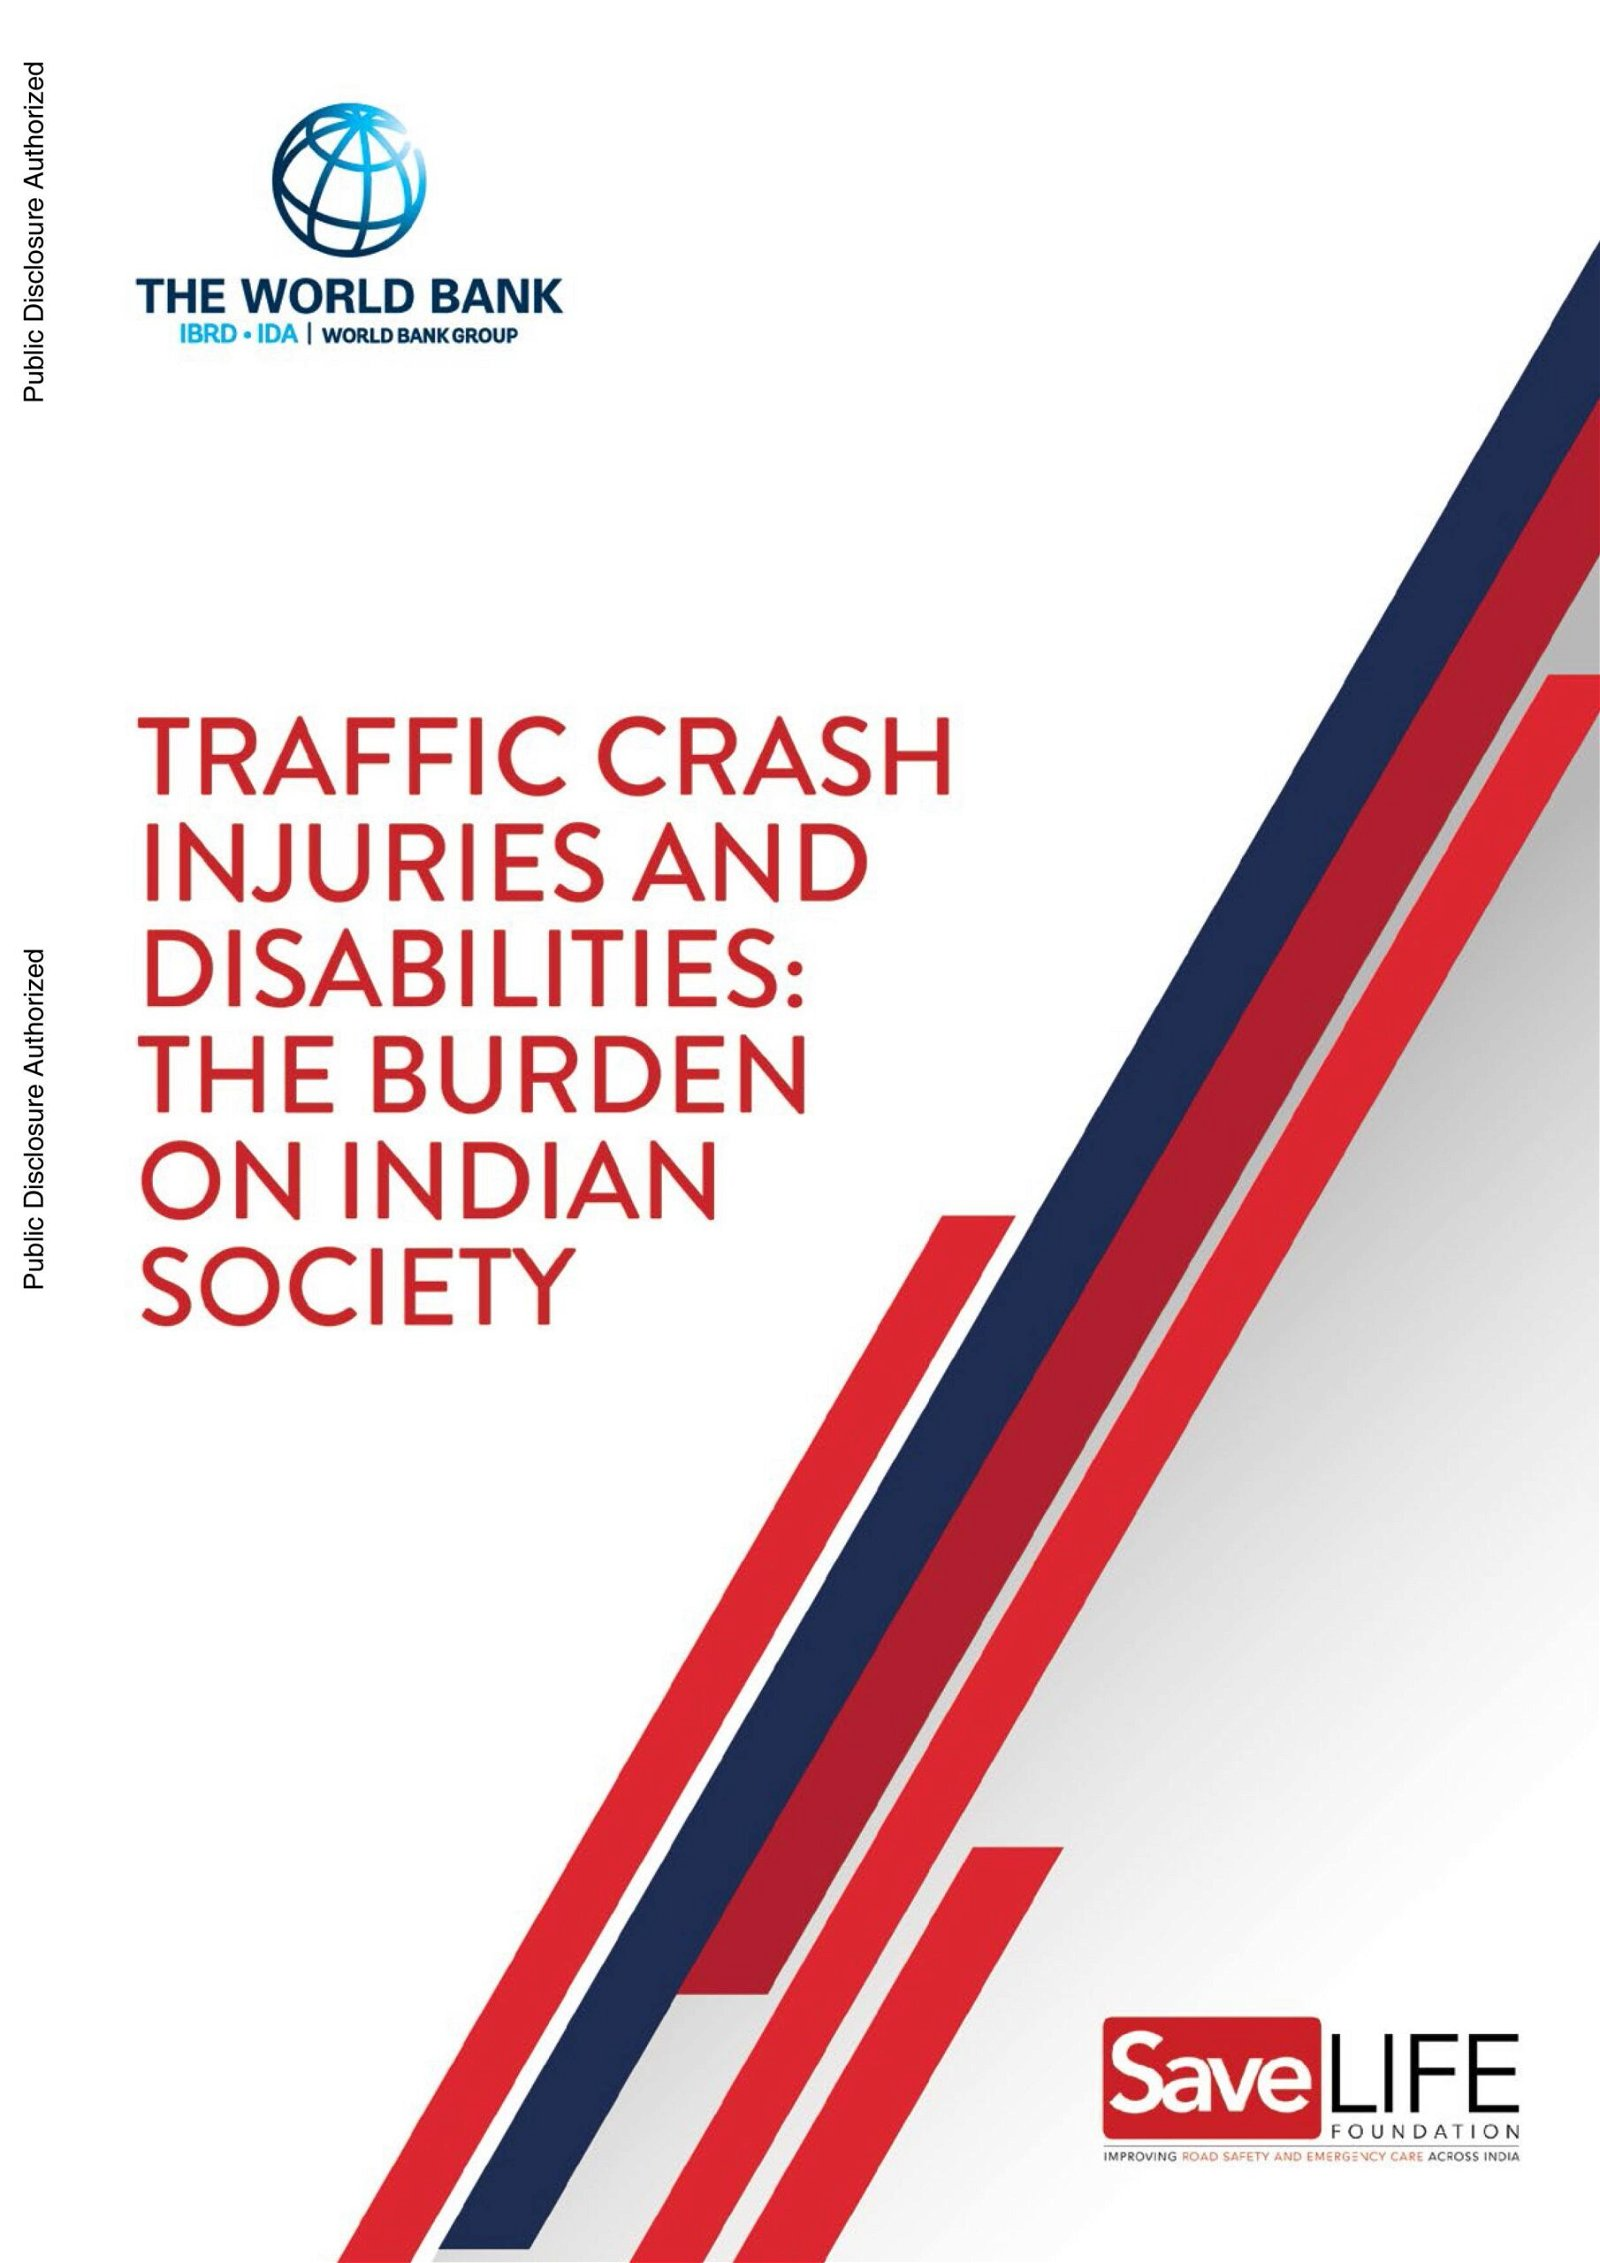 Traffic Crash Injuries and Disability Report